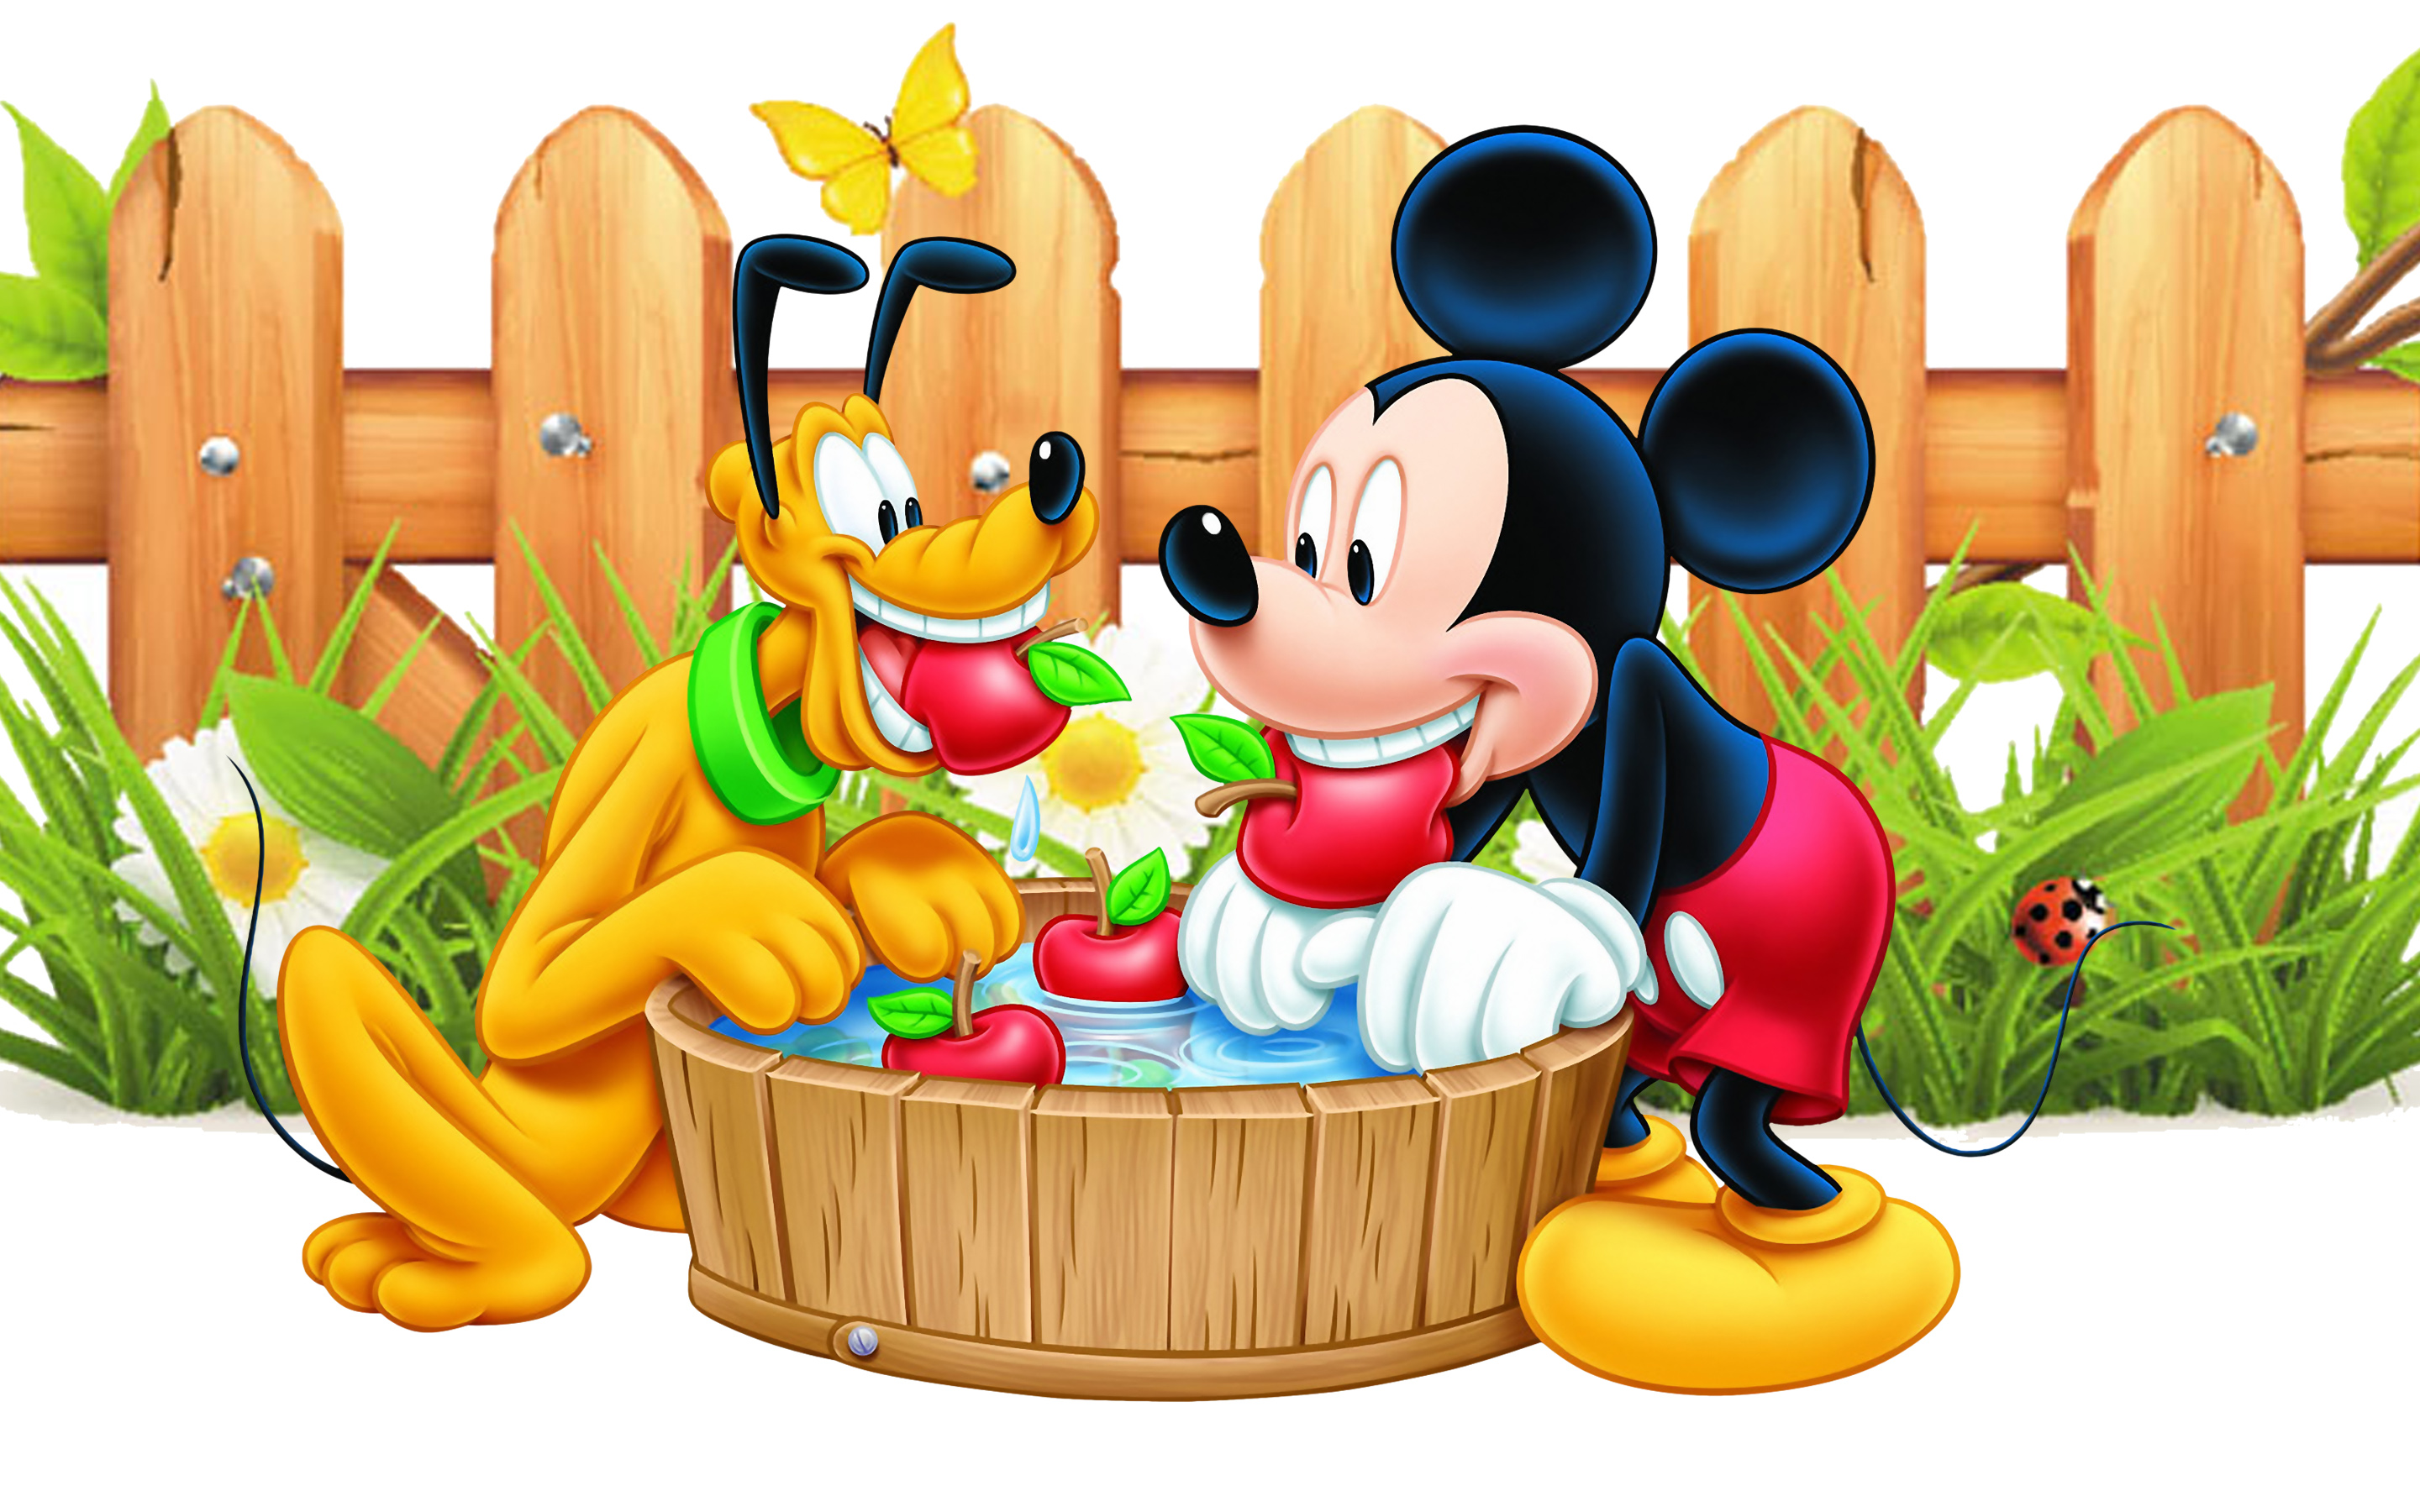 And Disney Mickey Minnie Mickey Mouse And Pluto Apple Red Wooden Fence Desktop